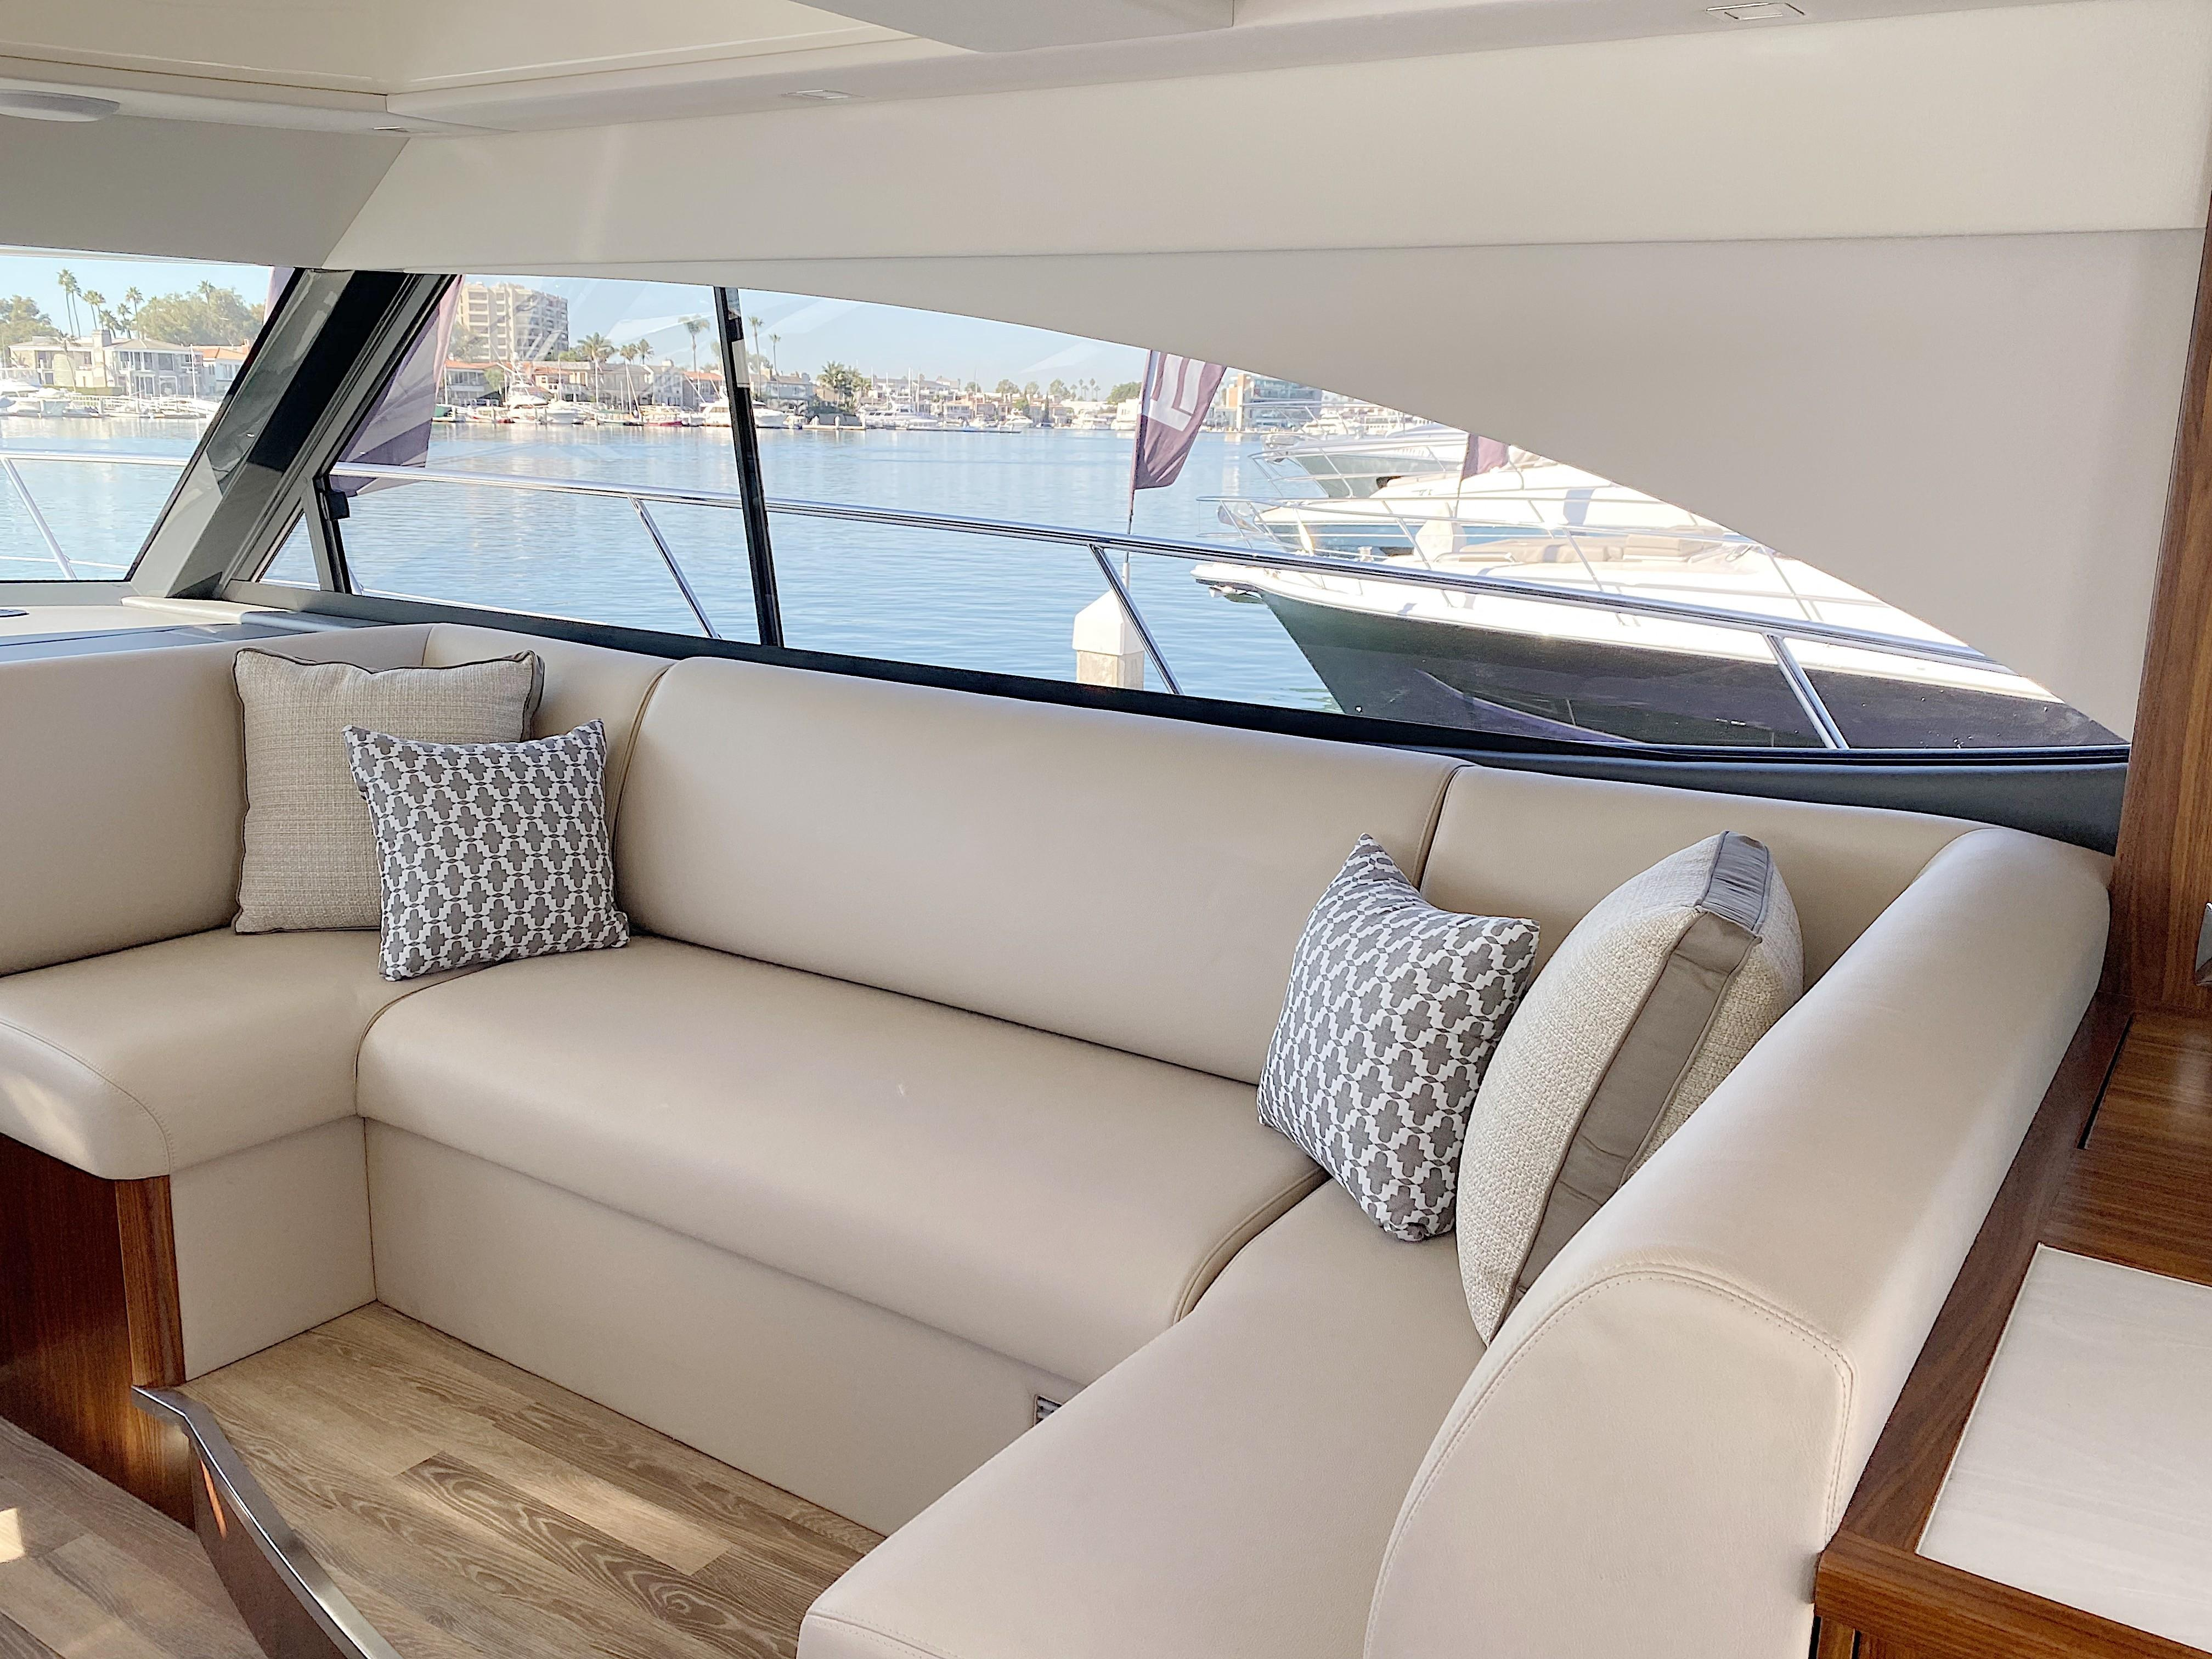 2020 Riviera 4800 Sport Yacht #R065 inventory image at Sun Country Coastal in Newport Beach